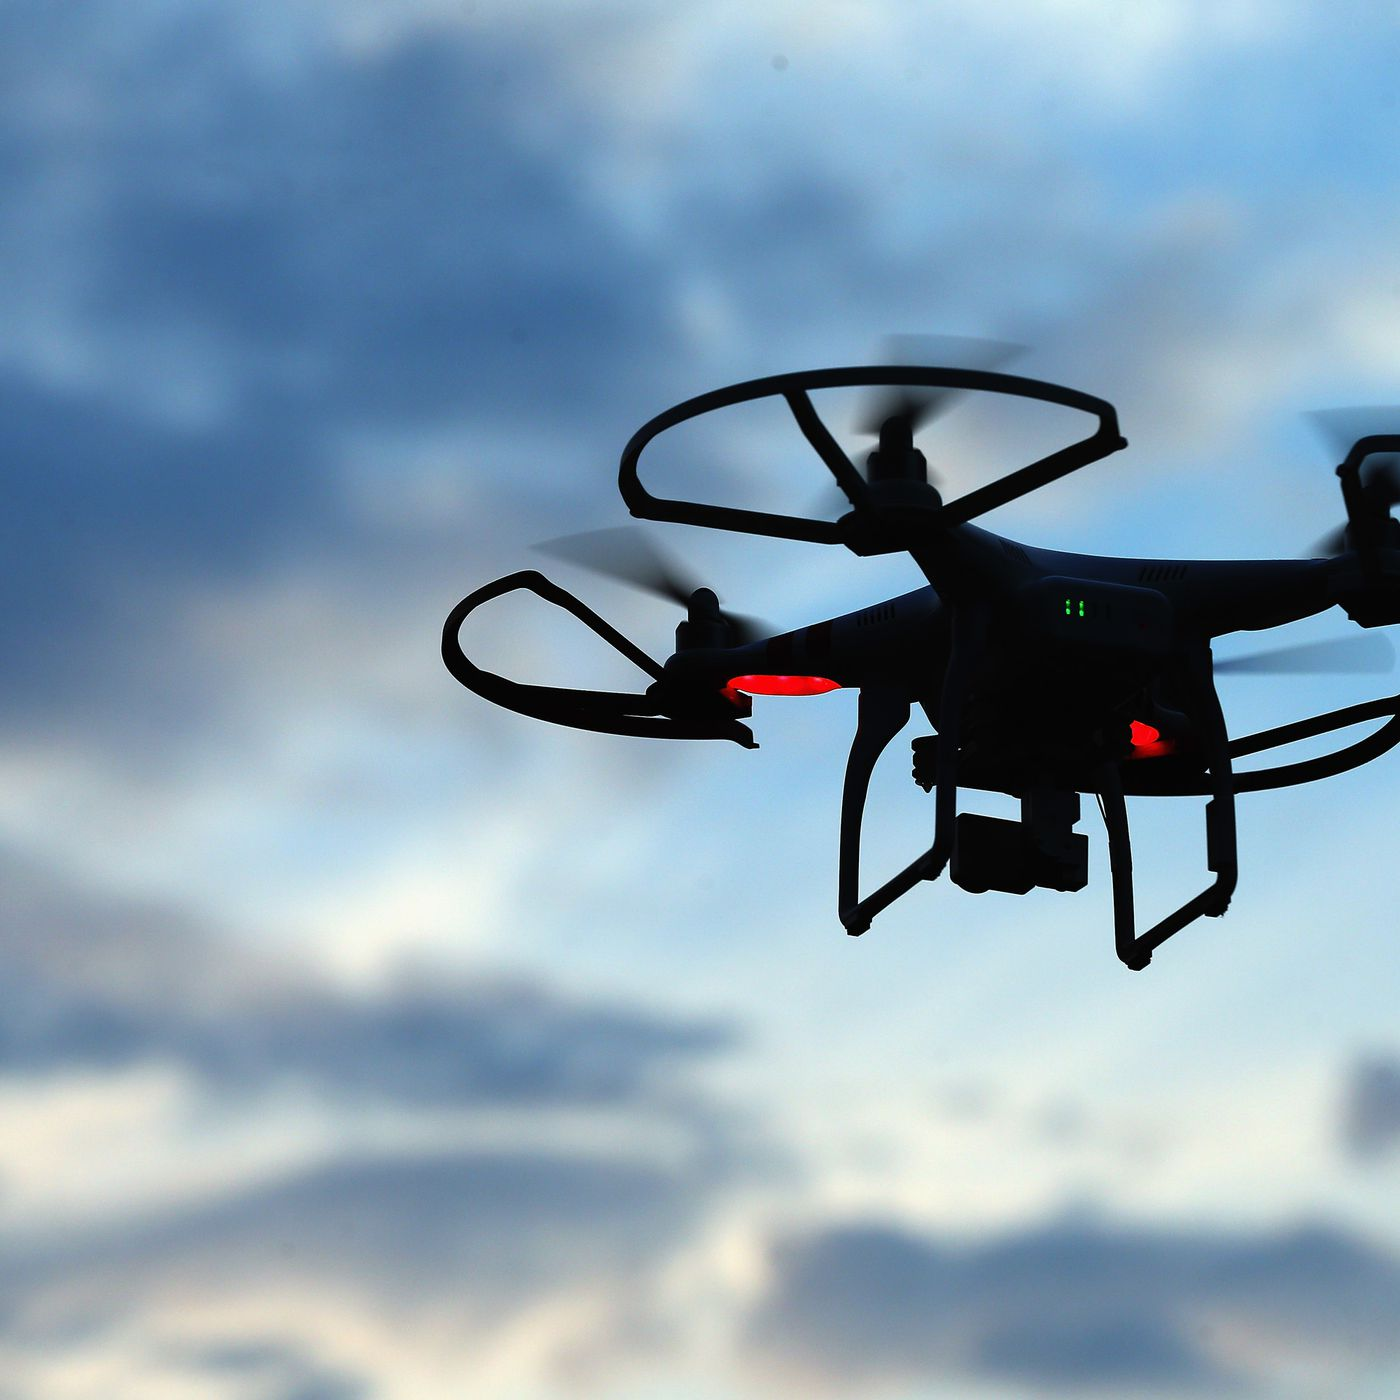 The FAA has issued nearly 23,000 drone pilot licenses in just three